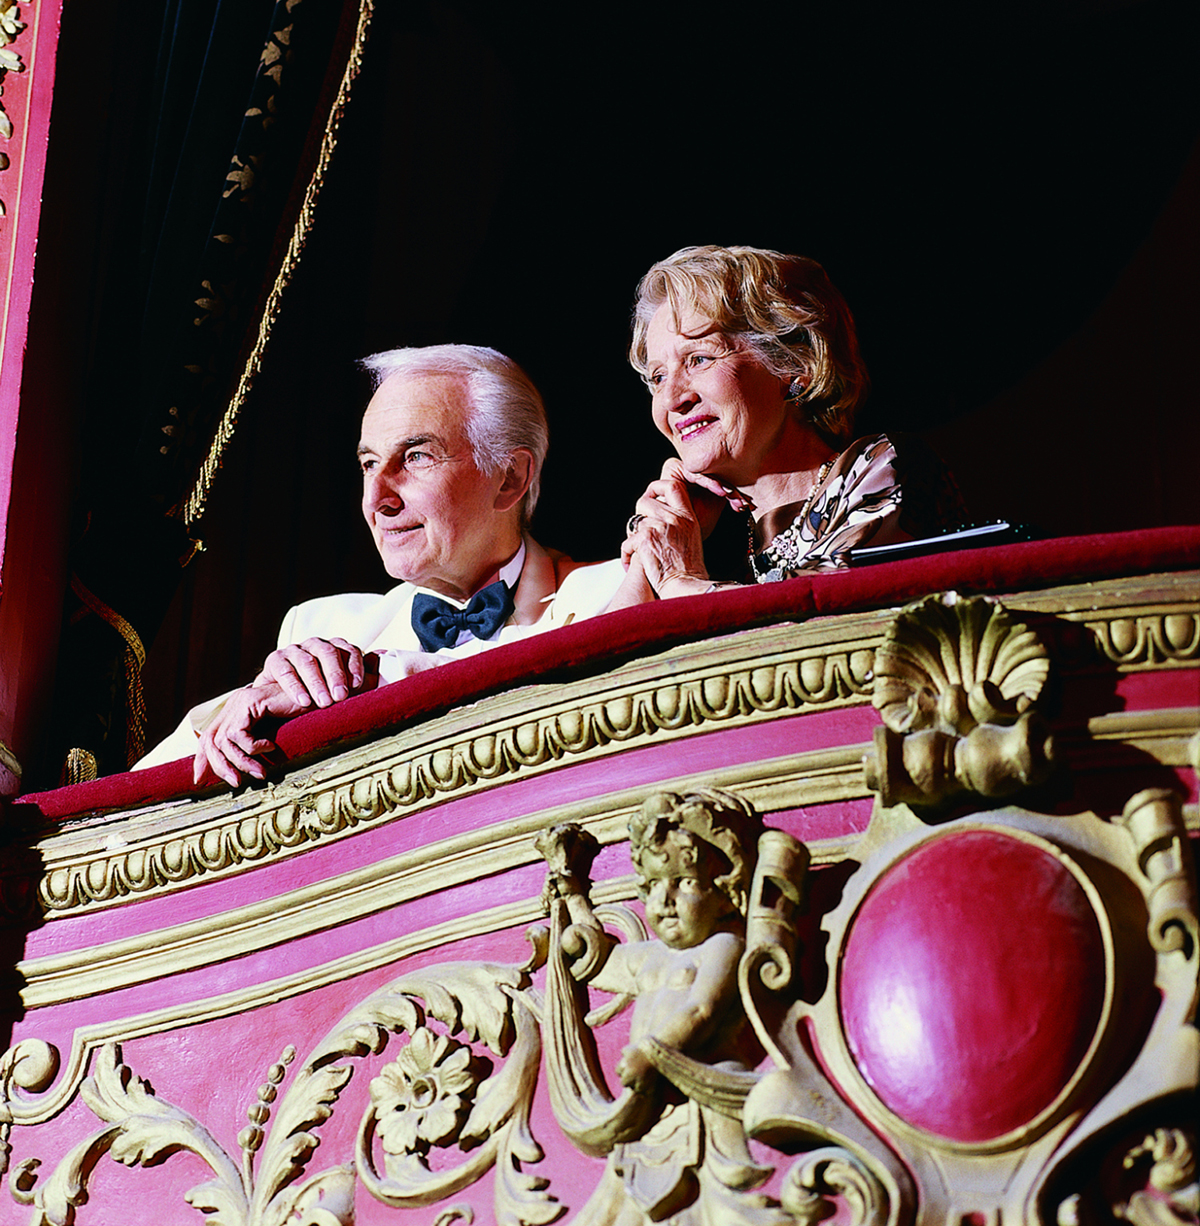 Mature Couple Sitting in a Theatre Balcony